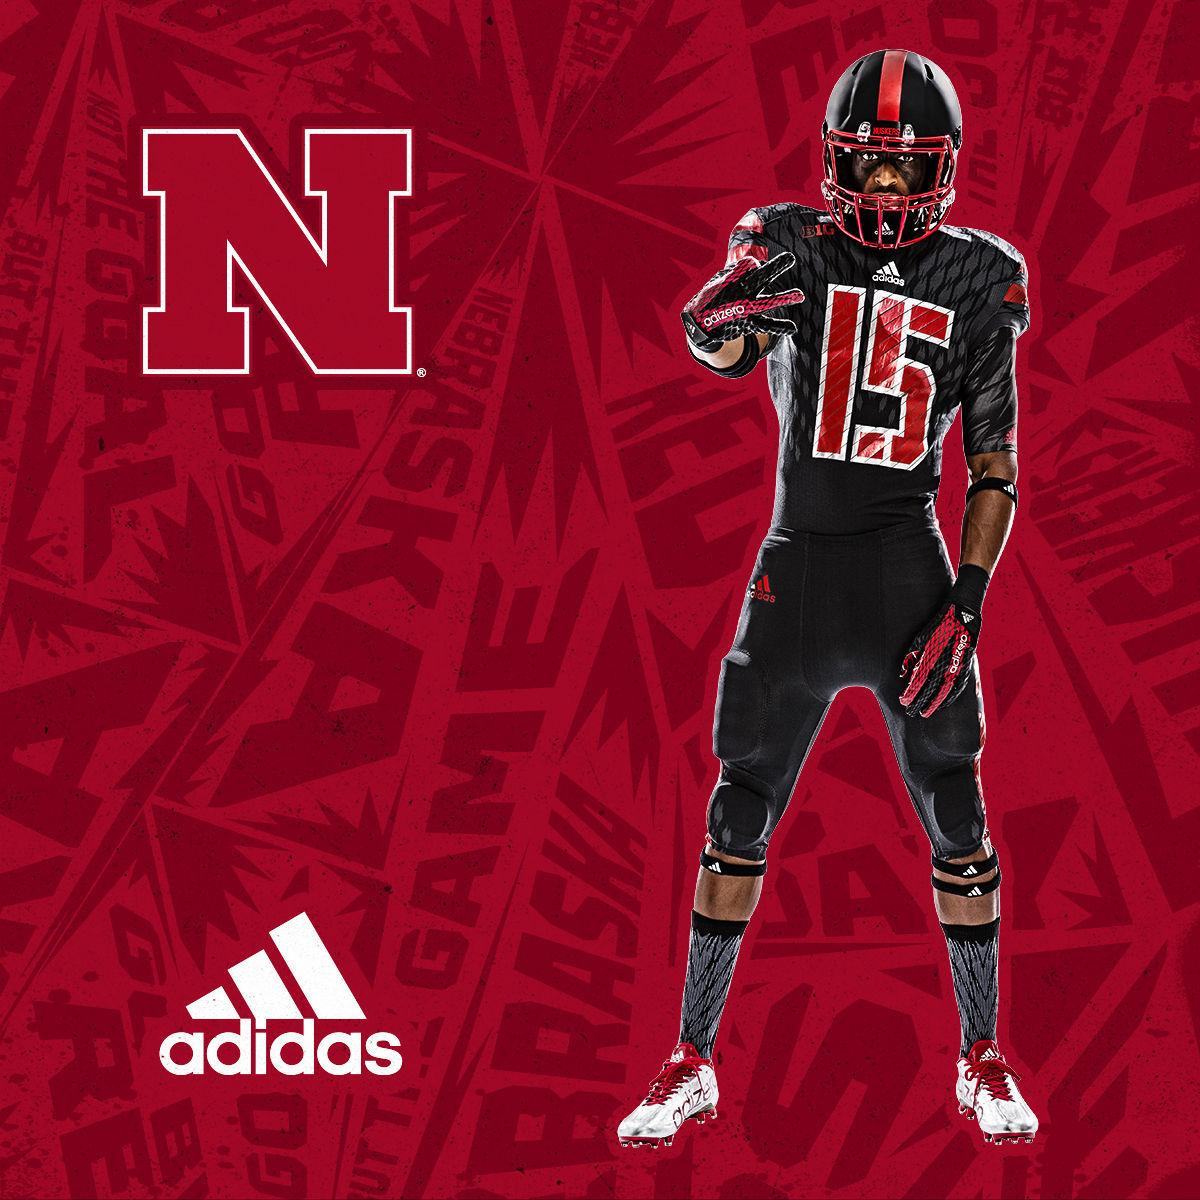 ae9bebb4f316 The University of Nebraska and adidas unveiled the new Primeknit Husker  Bold alternative football uniforms Thursday